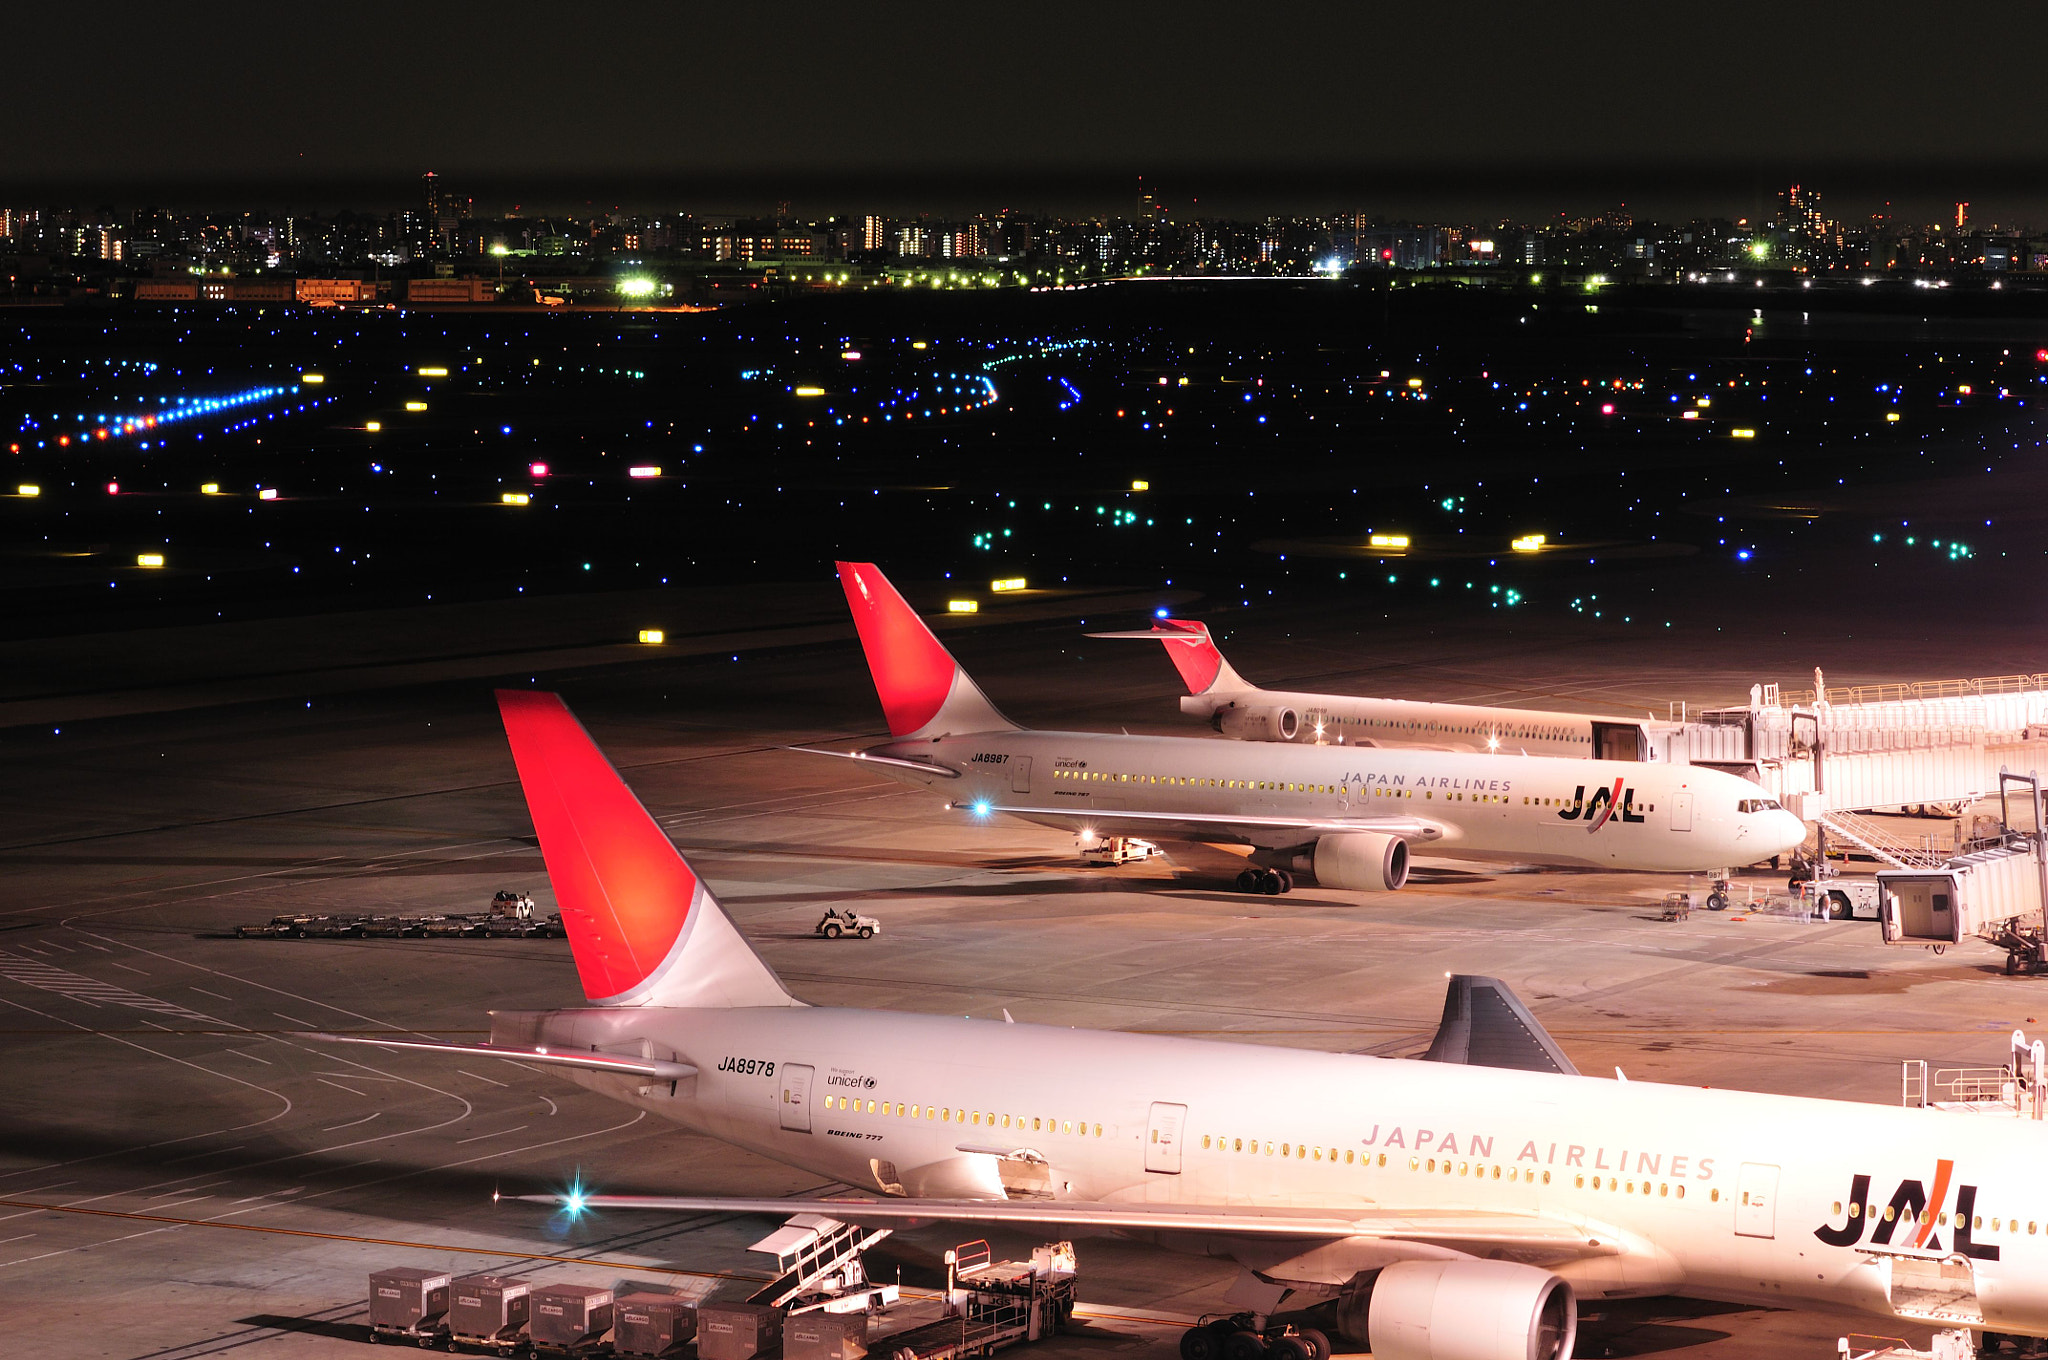 Photograph JAL by Keith_TT on 500px